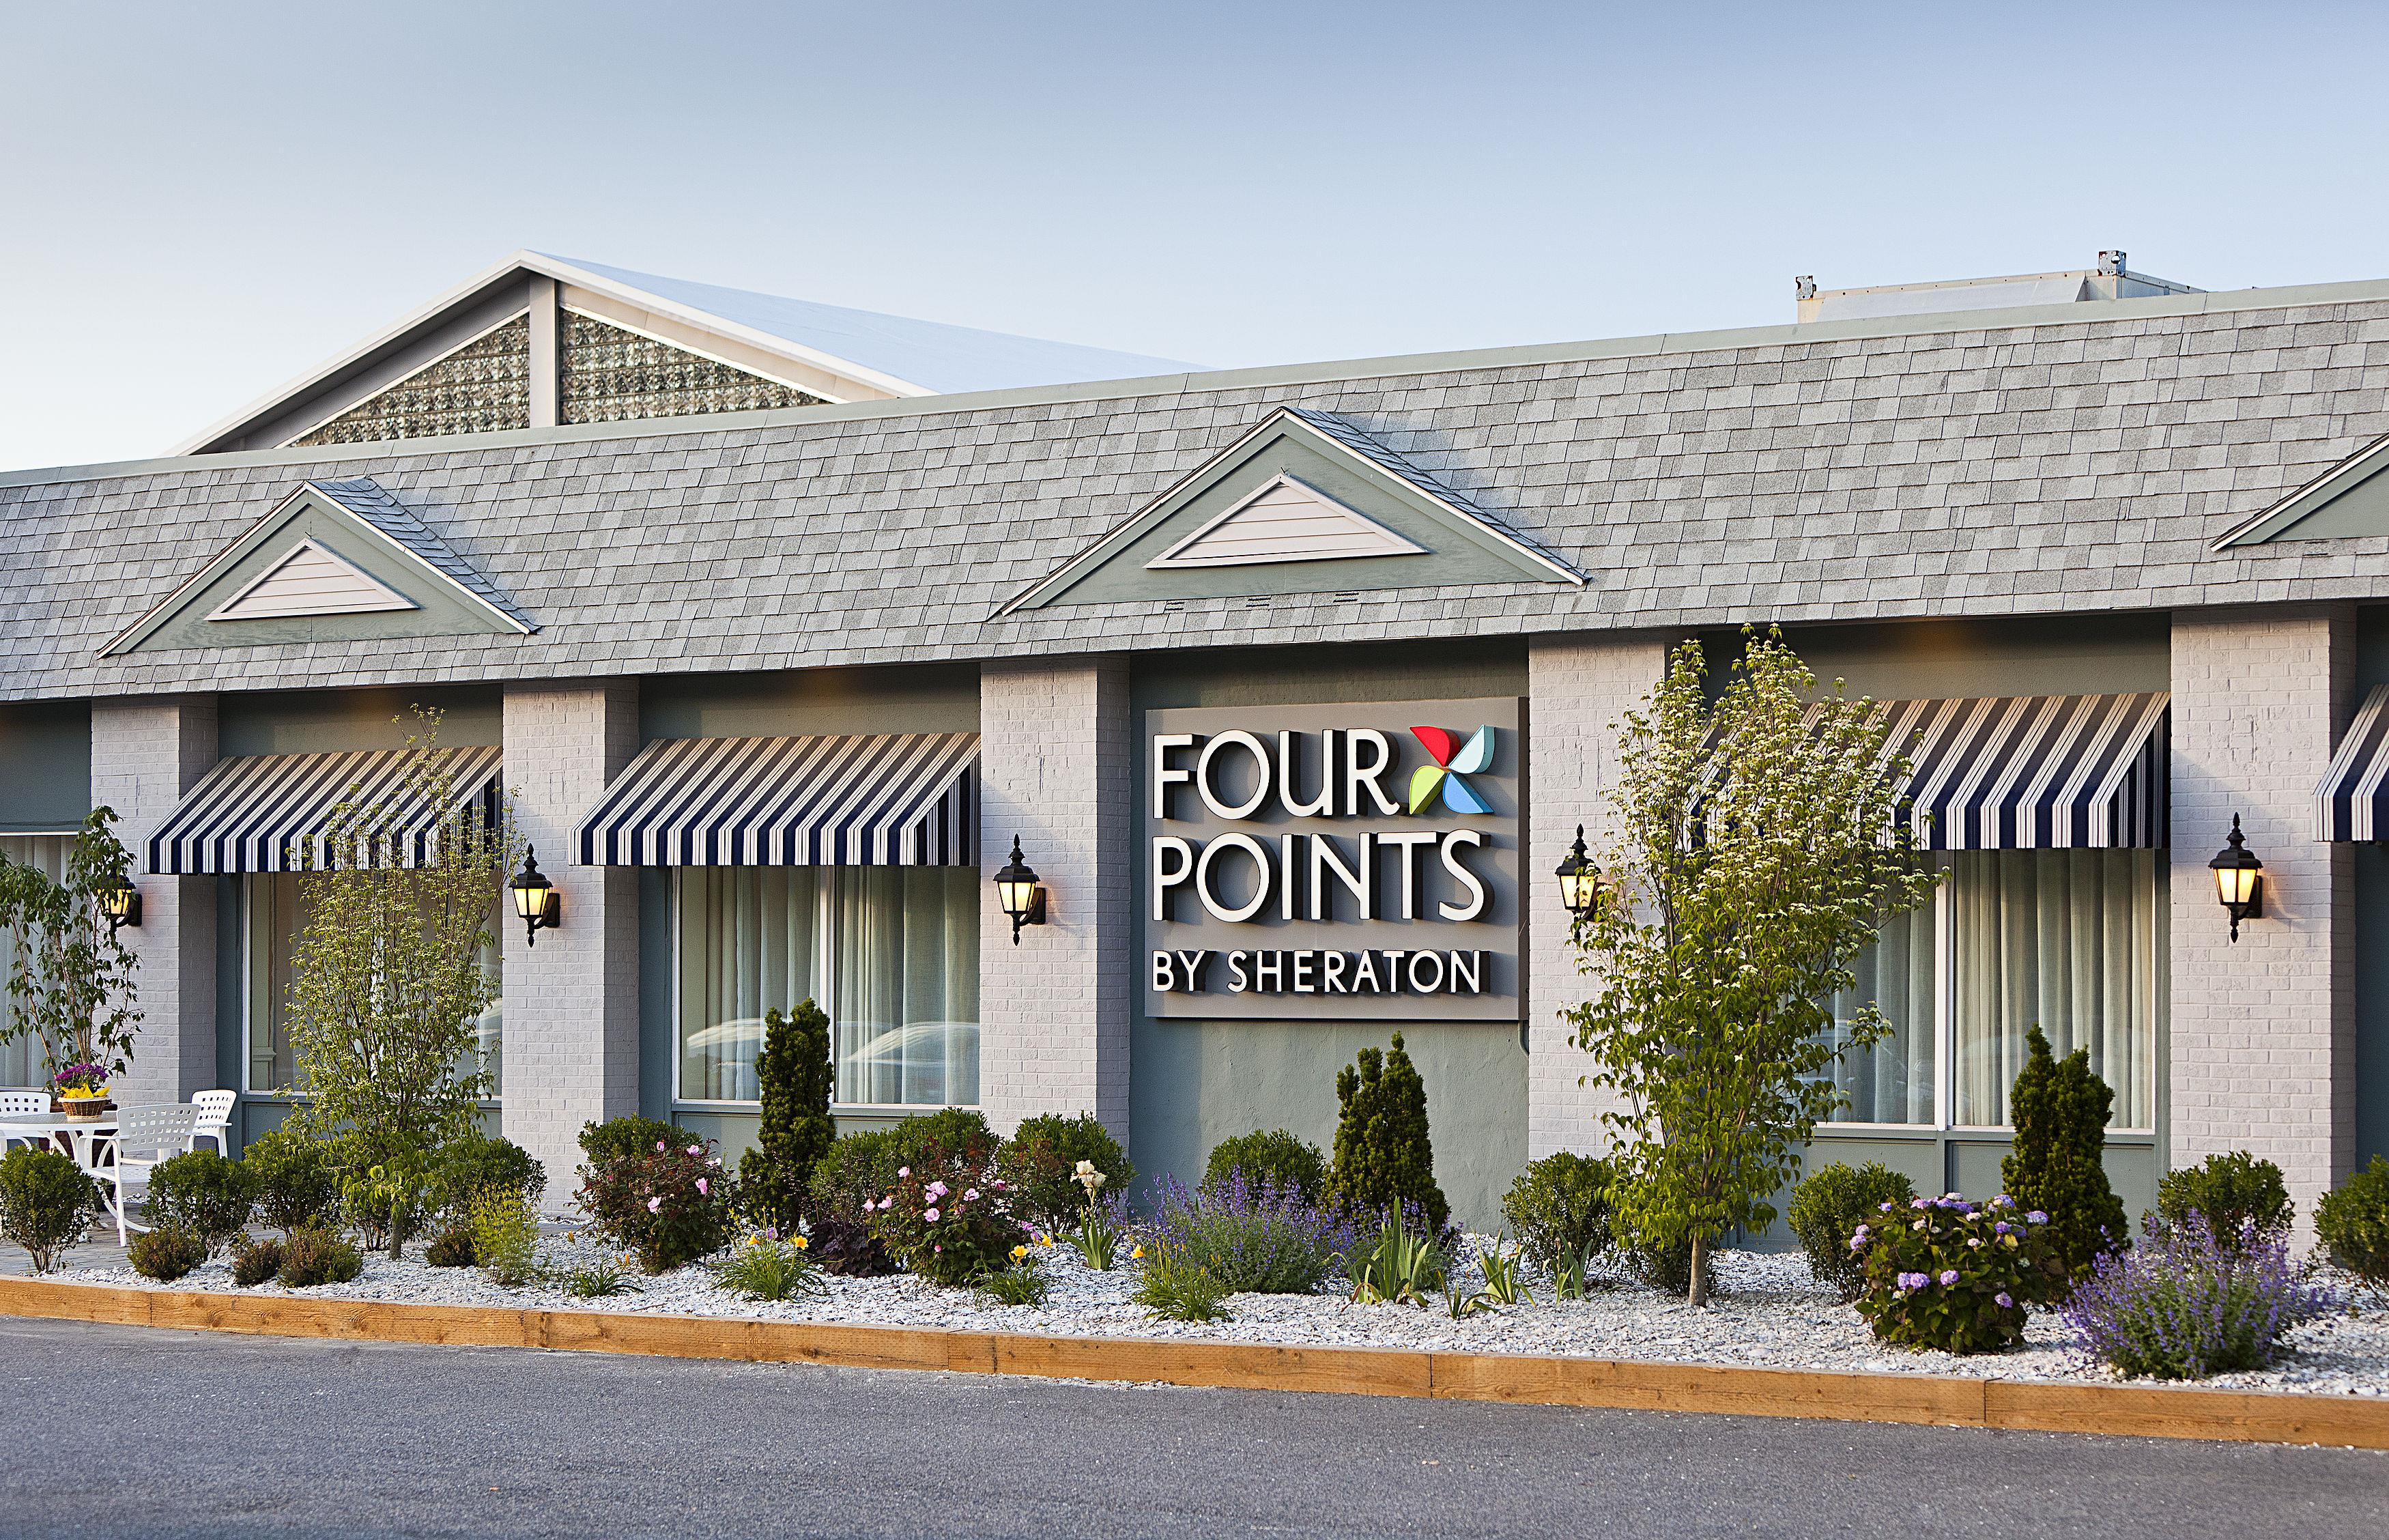 Four Points by Sheraton Eastham Cape Cod image 3